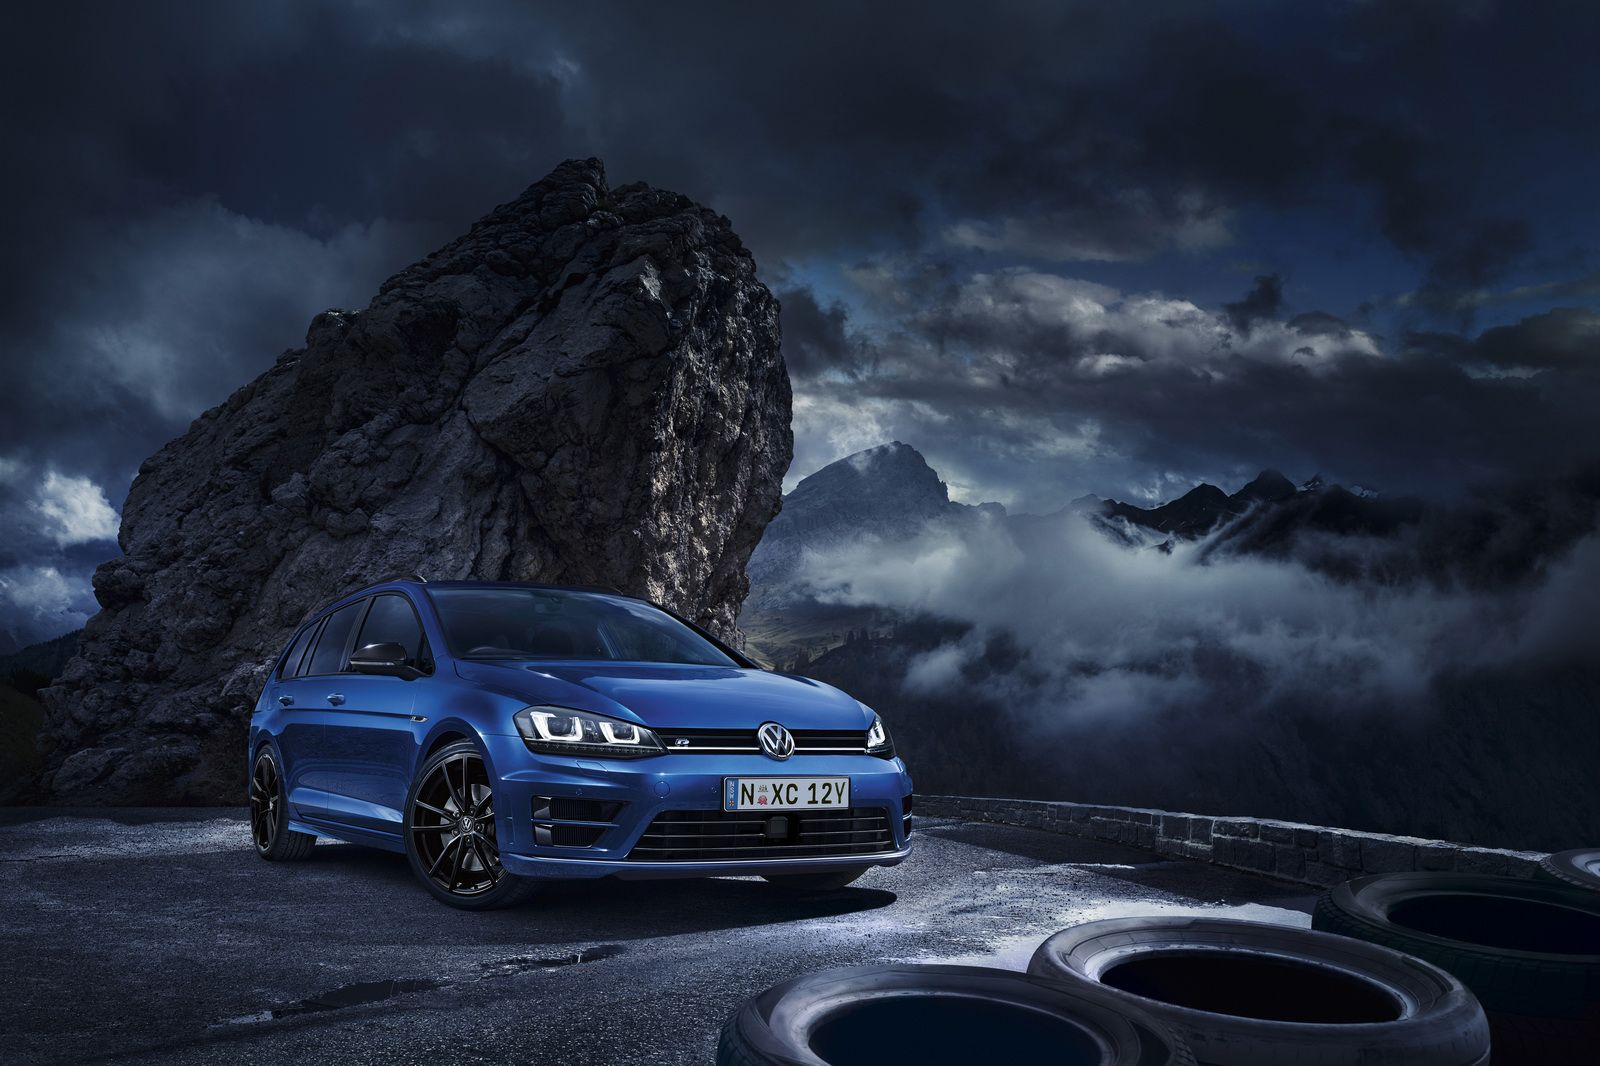 2016 Volkswagen Golf R Wagon Review Caradvice In 2020 Volkswagen Golf Volkswagen Golf R Volkswagen